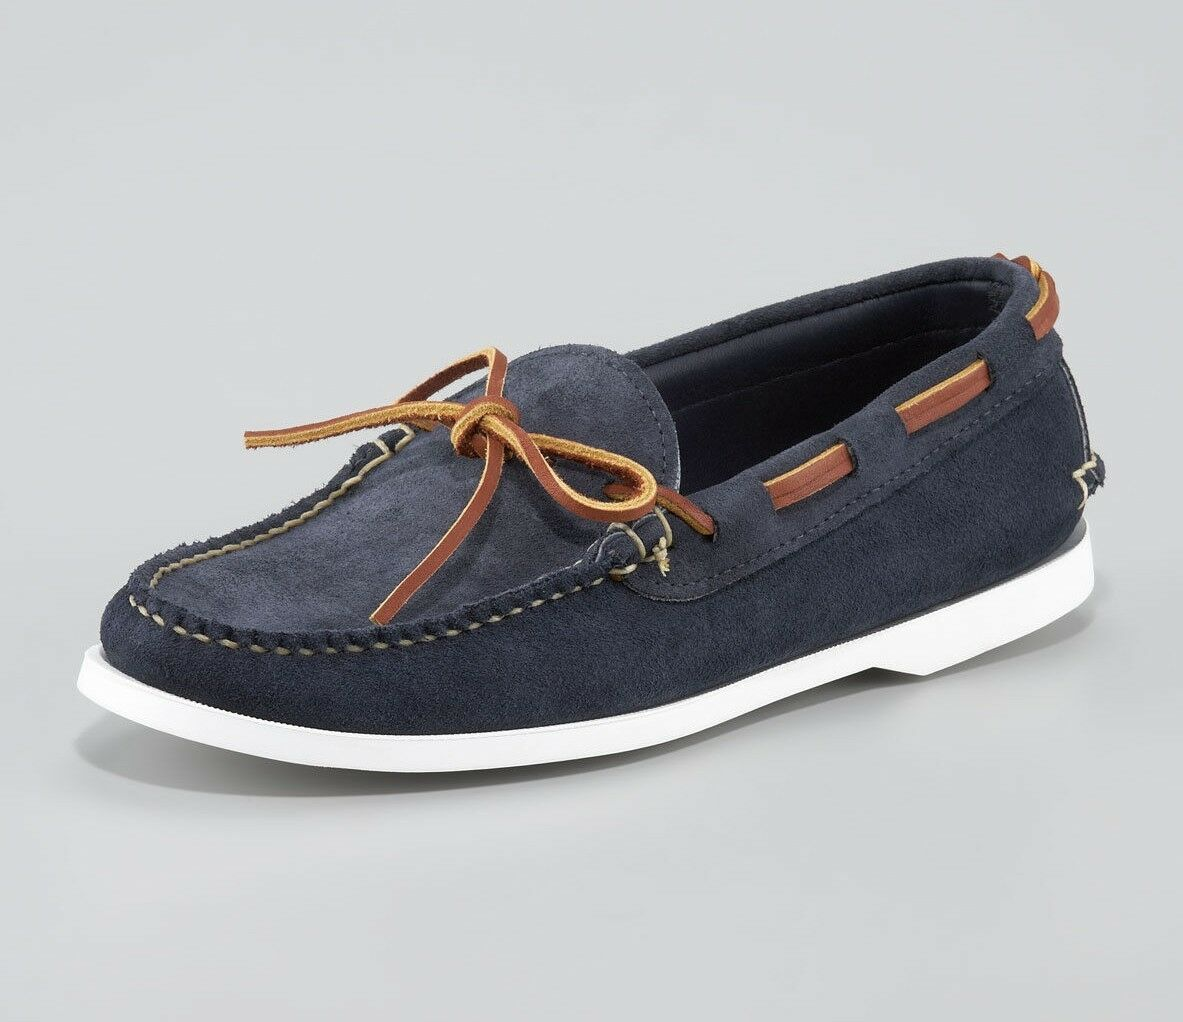 d59c305a6877aa Mens Ralph Lauren Made in in in USA bluee Suede Boat shoes Size 13 648fdd  ...